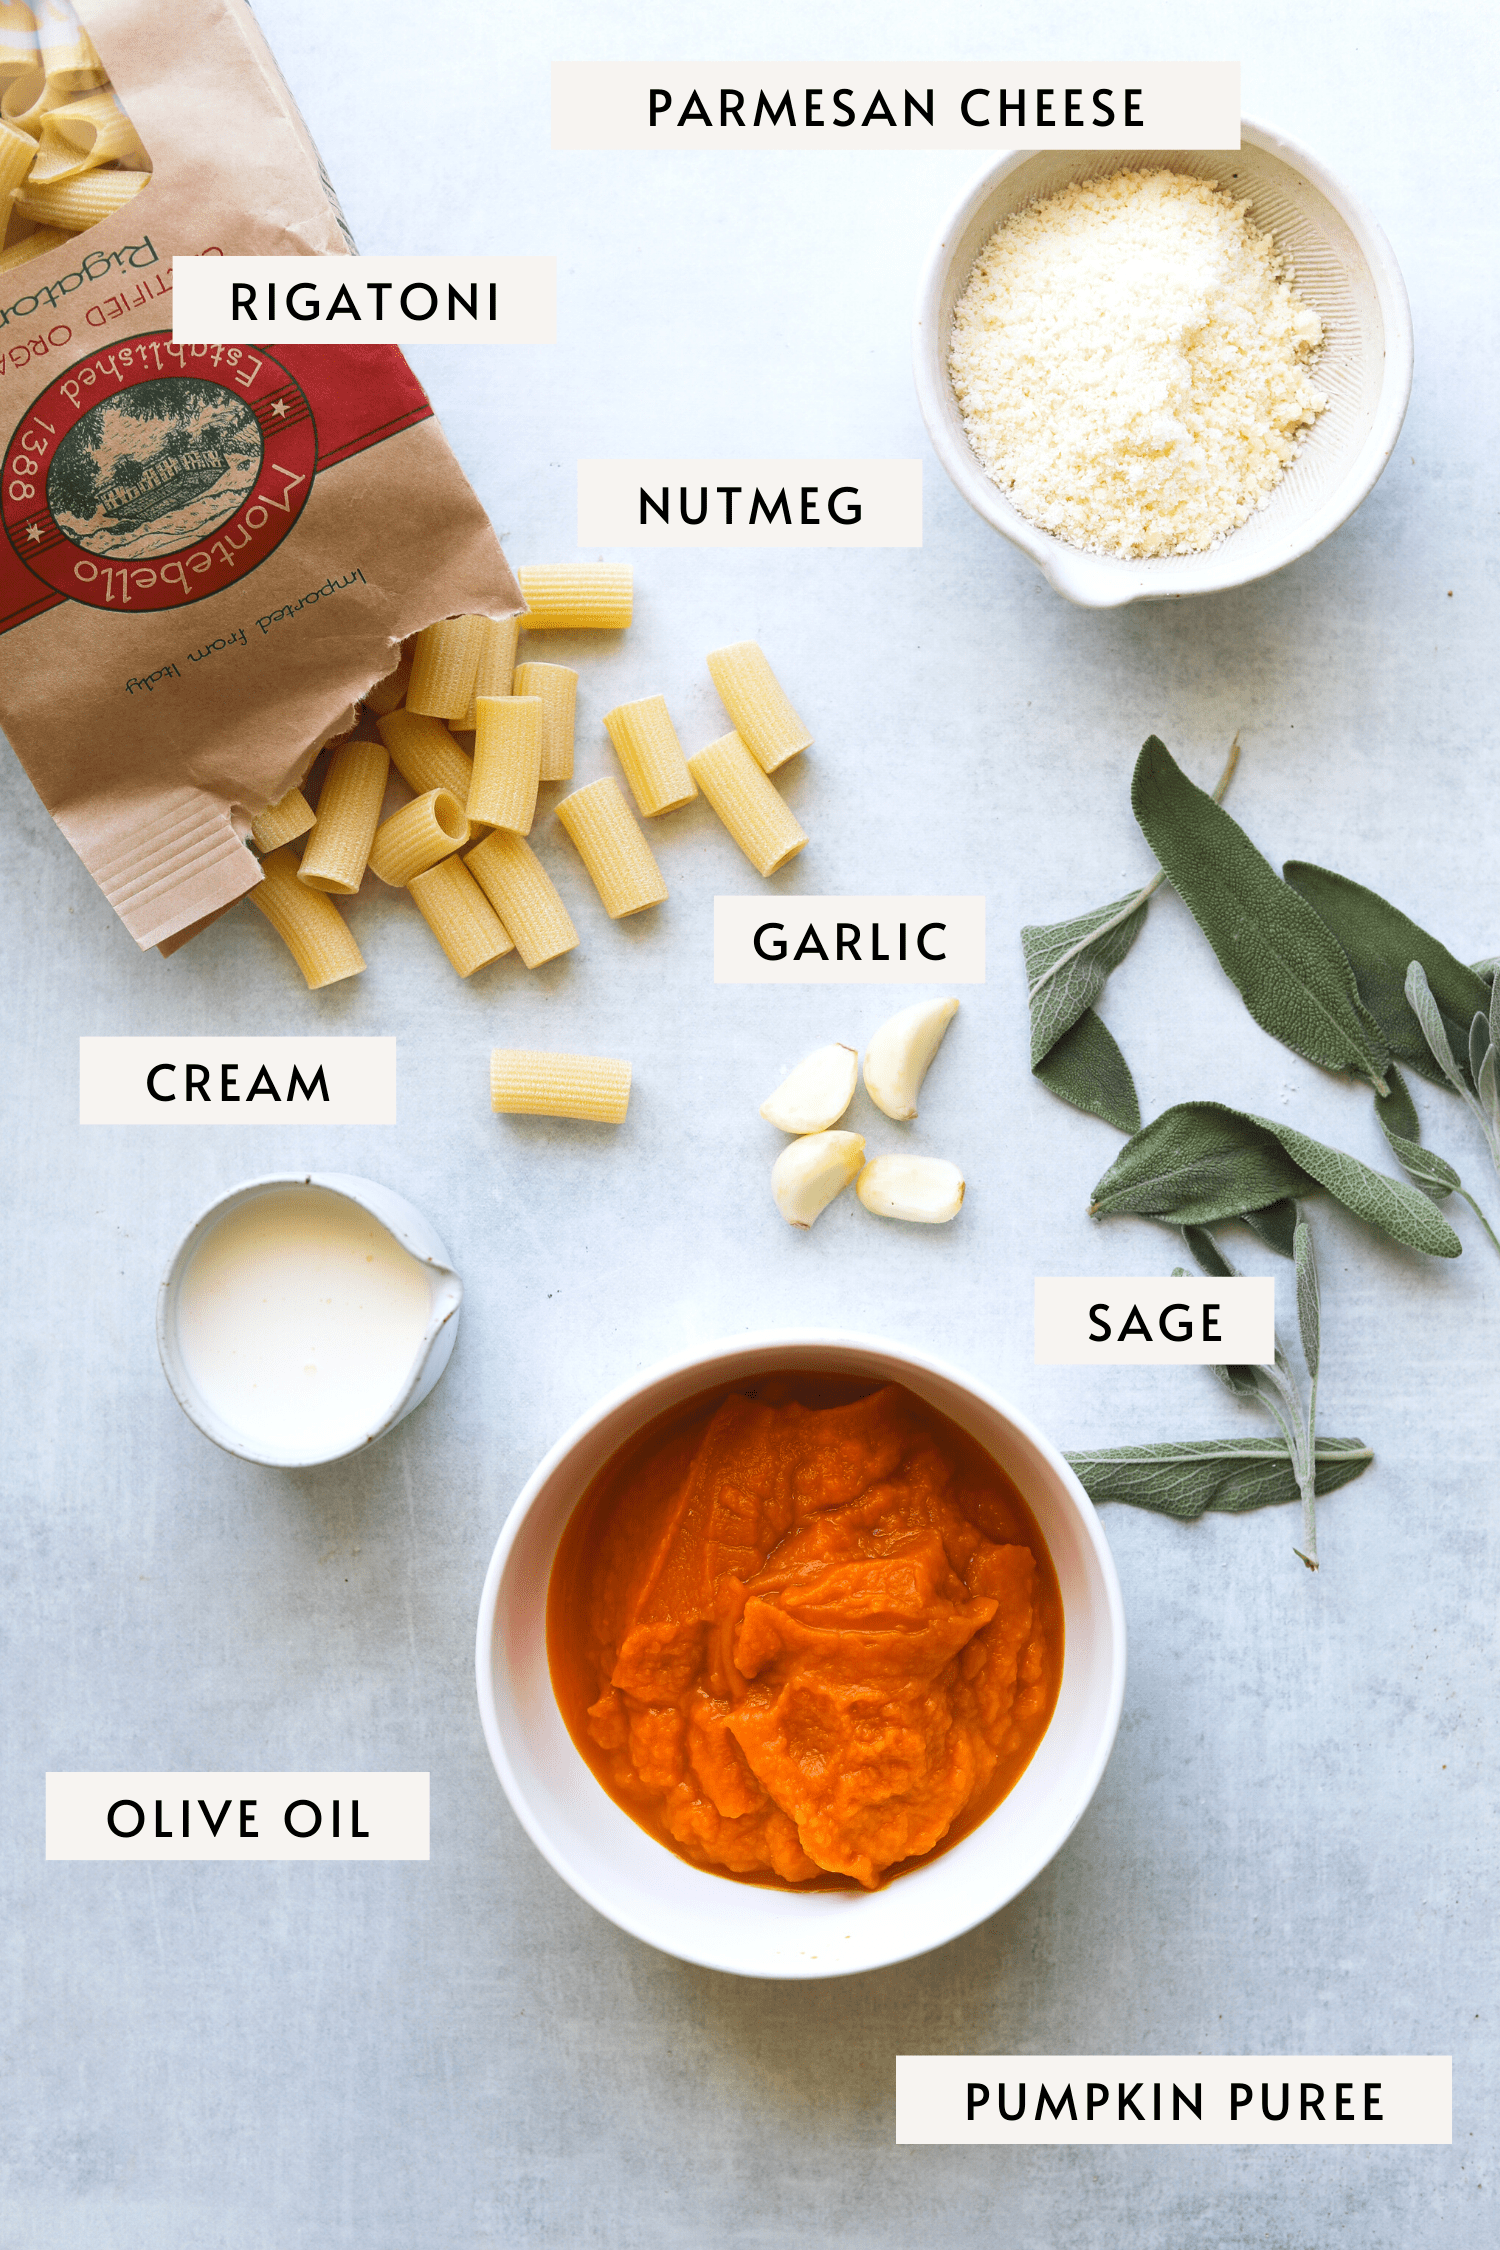 parmesan cheese, sage leaves, dried rigatoni pasta, garlic cloves, canned pumpkin puree